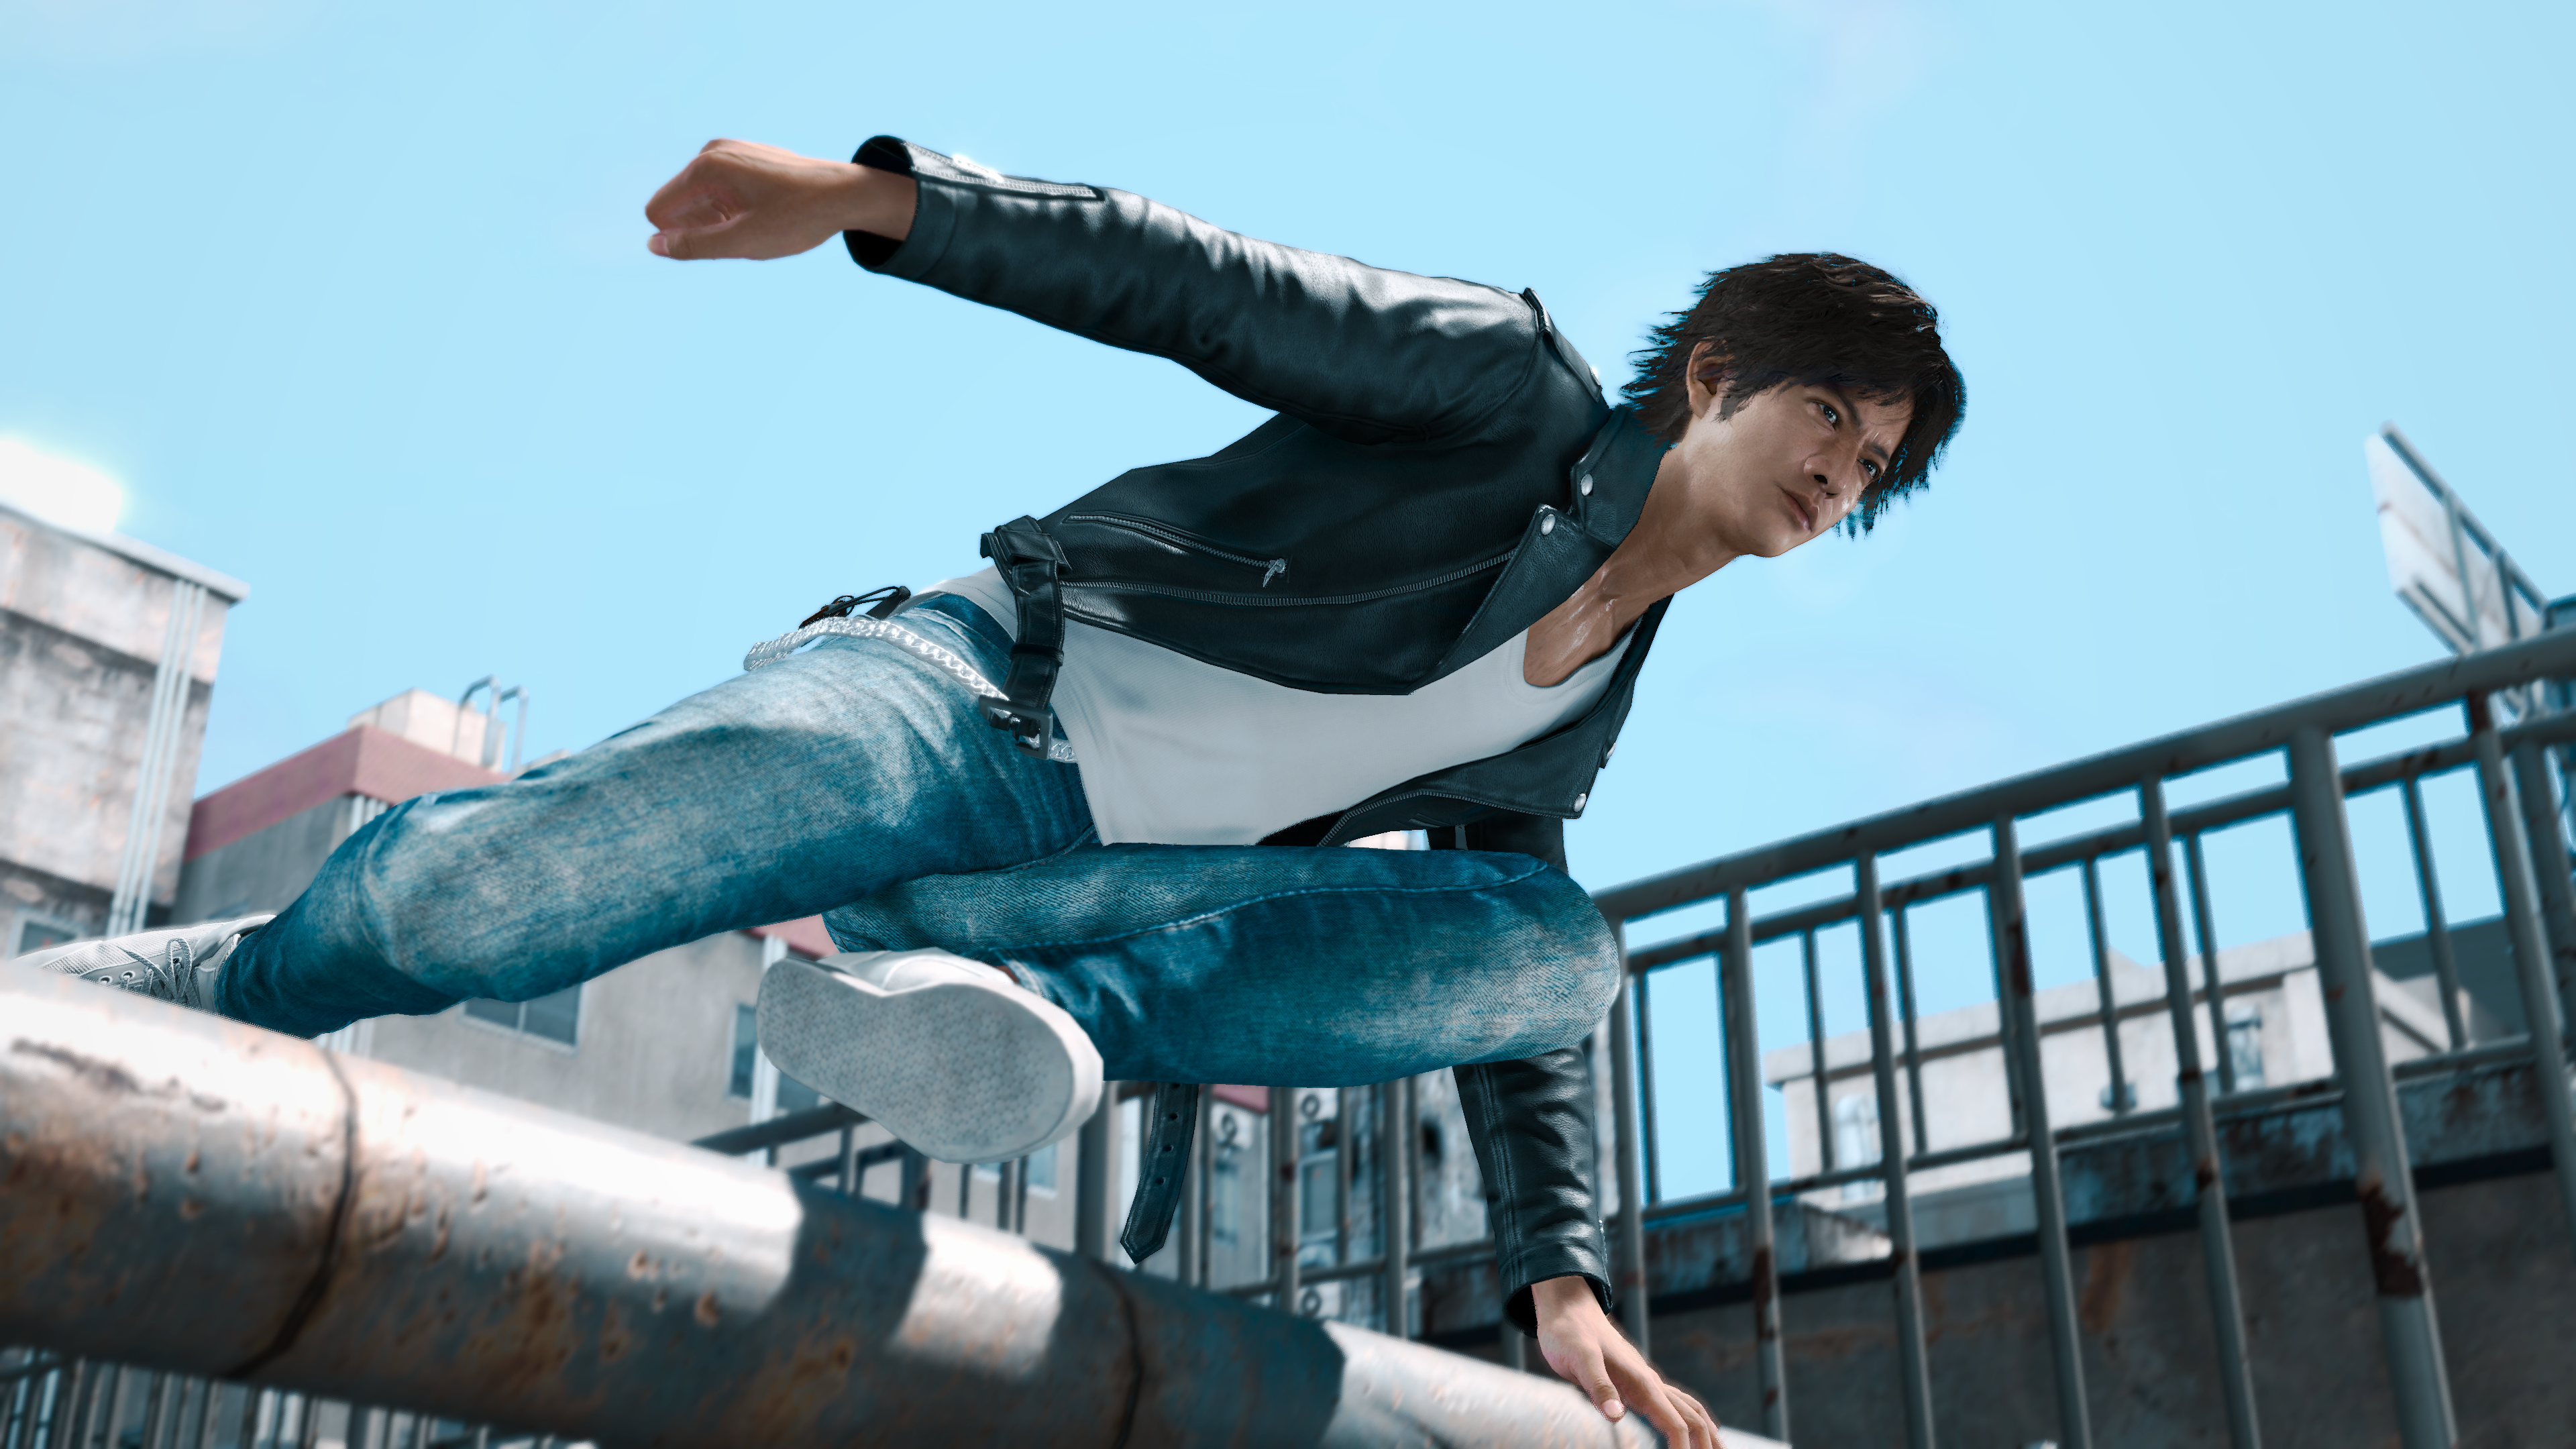 Judgment Arrives Remastered on PS5, XSX, and Stadia in April